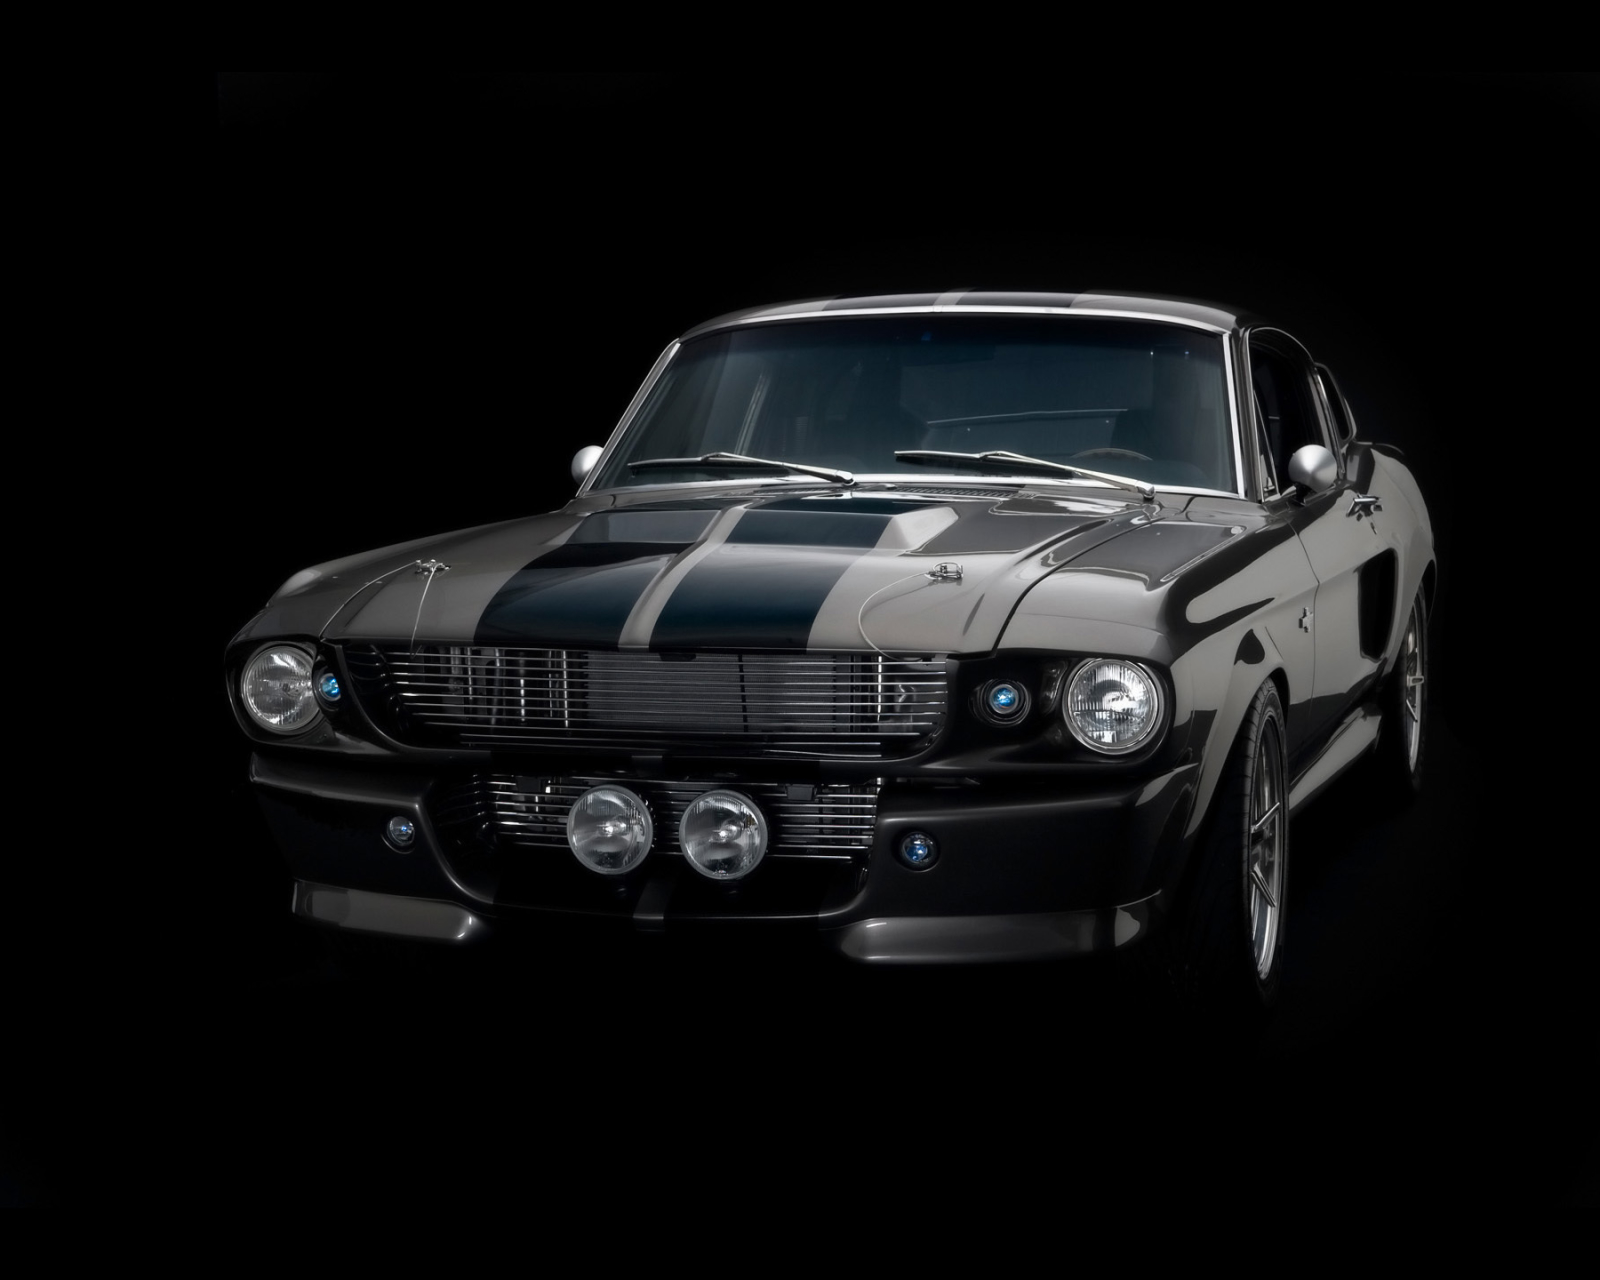 Vehicles ford mustang shelby gt500 1600x1280 mobile wallpaper